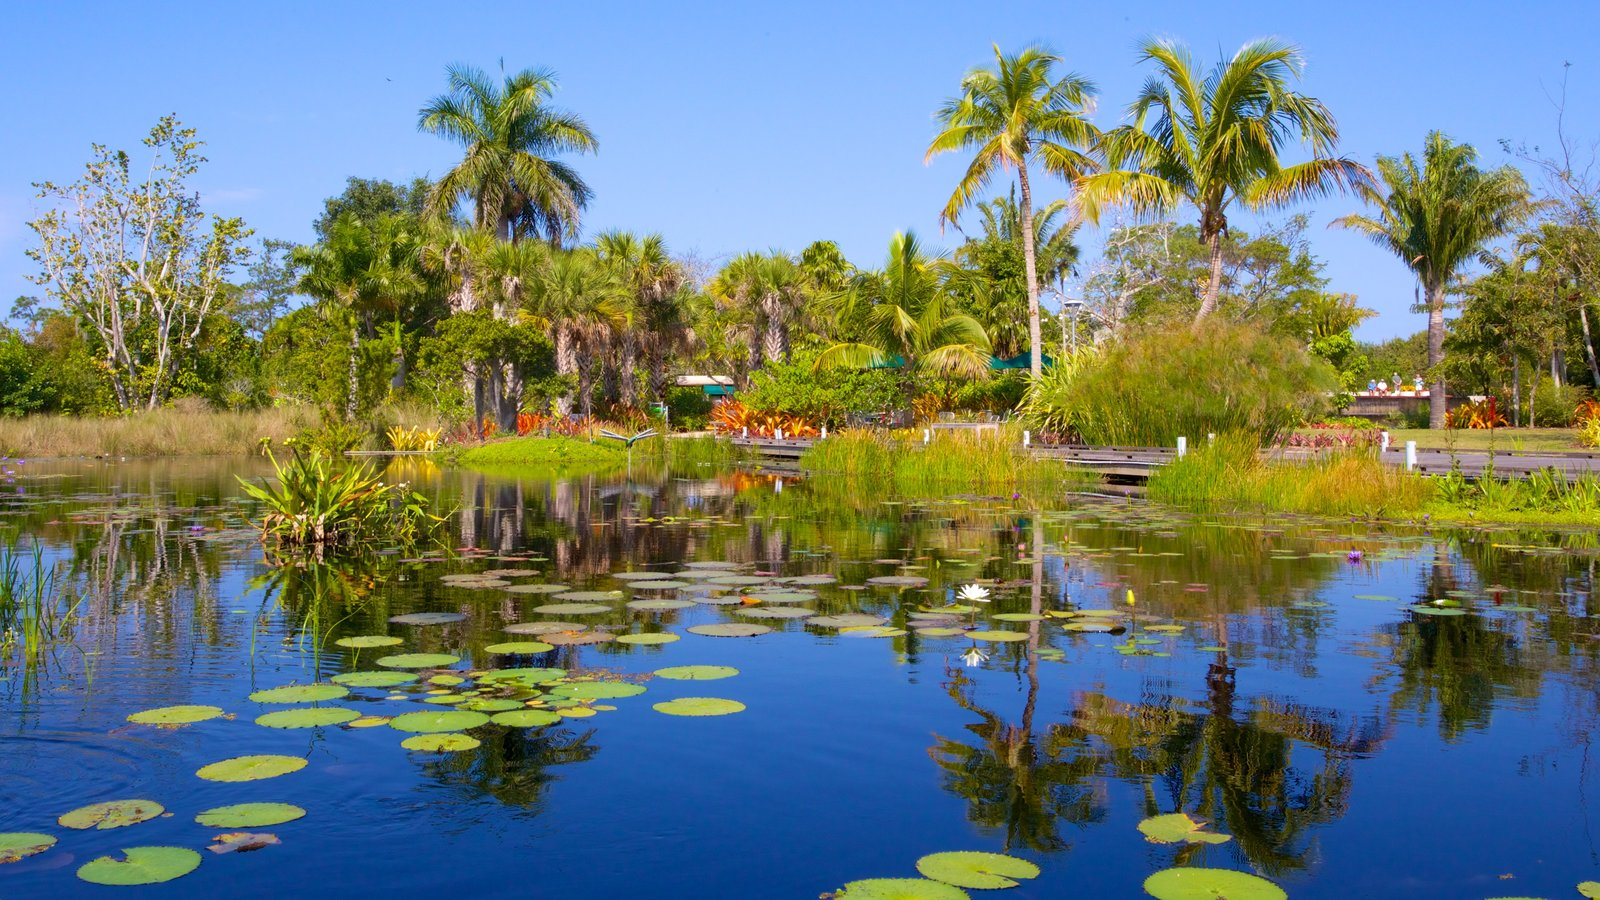 Naples pictures view photos images of naples - Botanical gardens naples florida ...